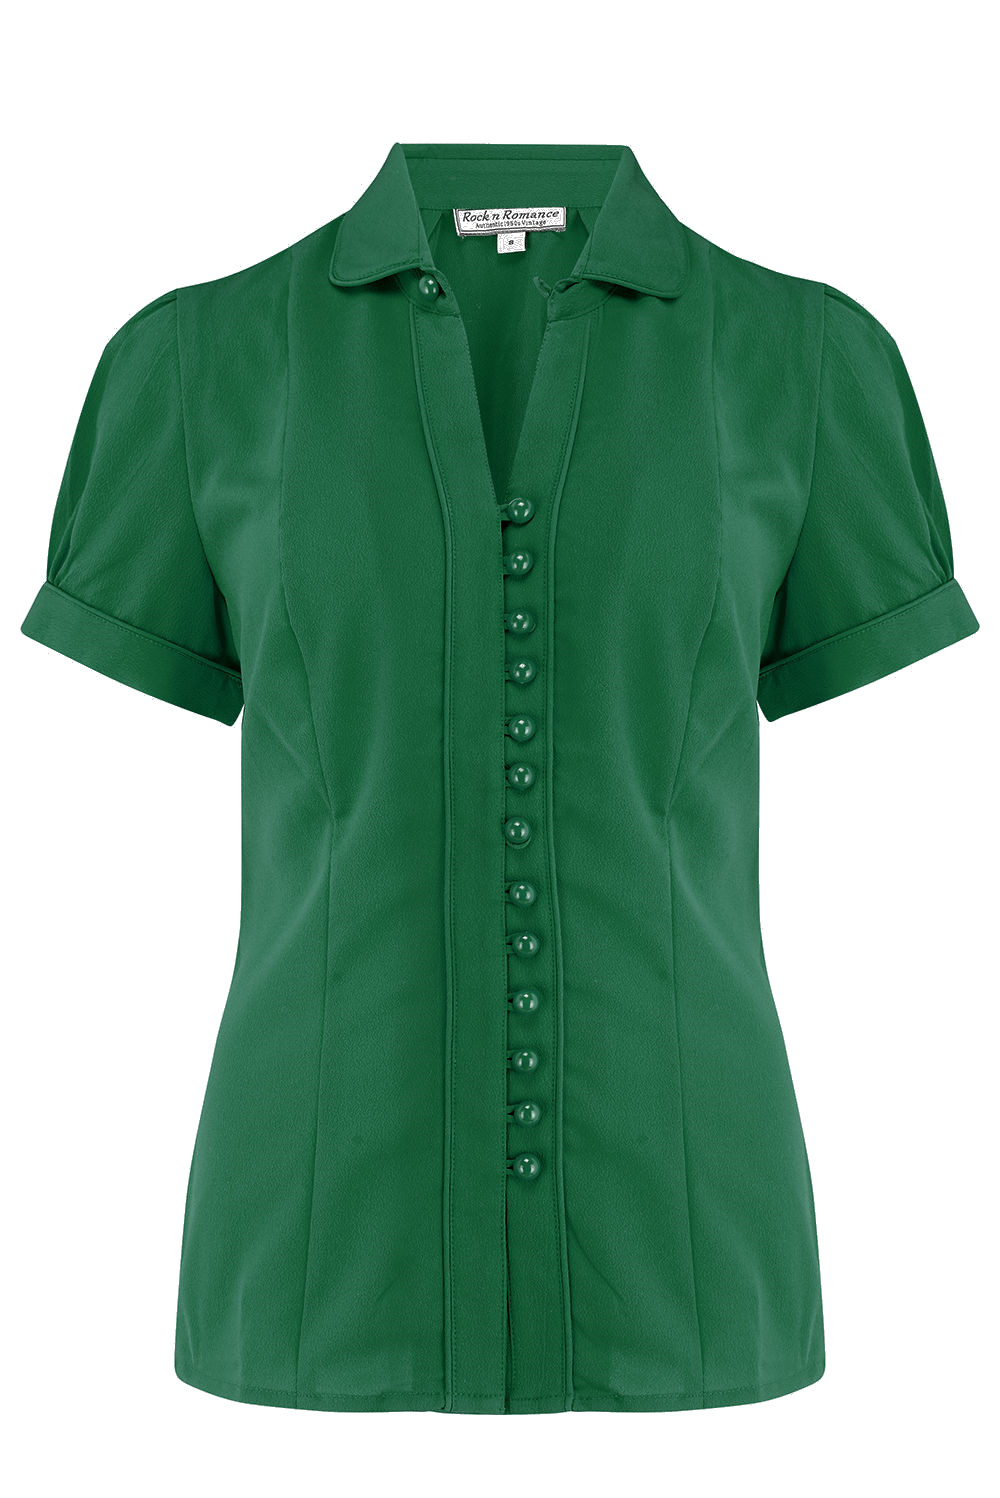 1940s Blouses and Tops Margot Blouse in Solid Green Perfect 1950s Style £35.00 AT vintagedancer.com